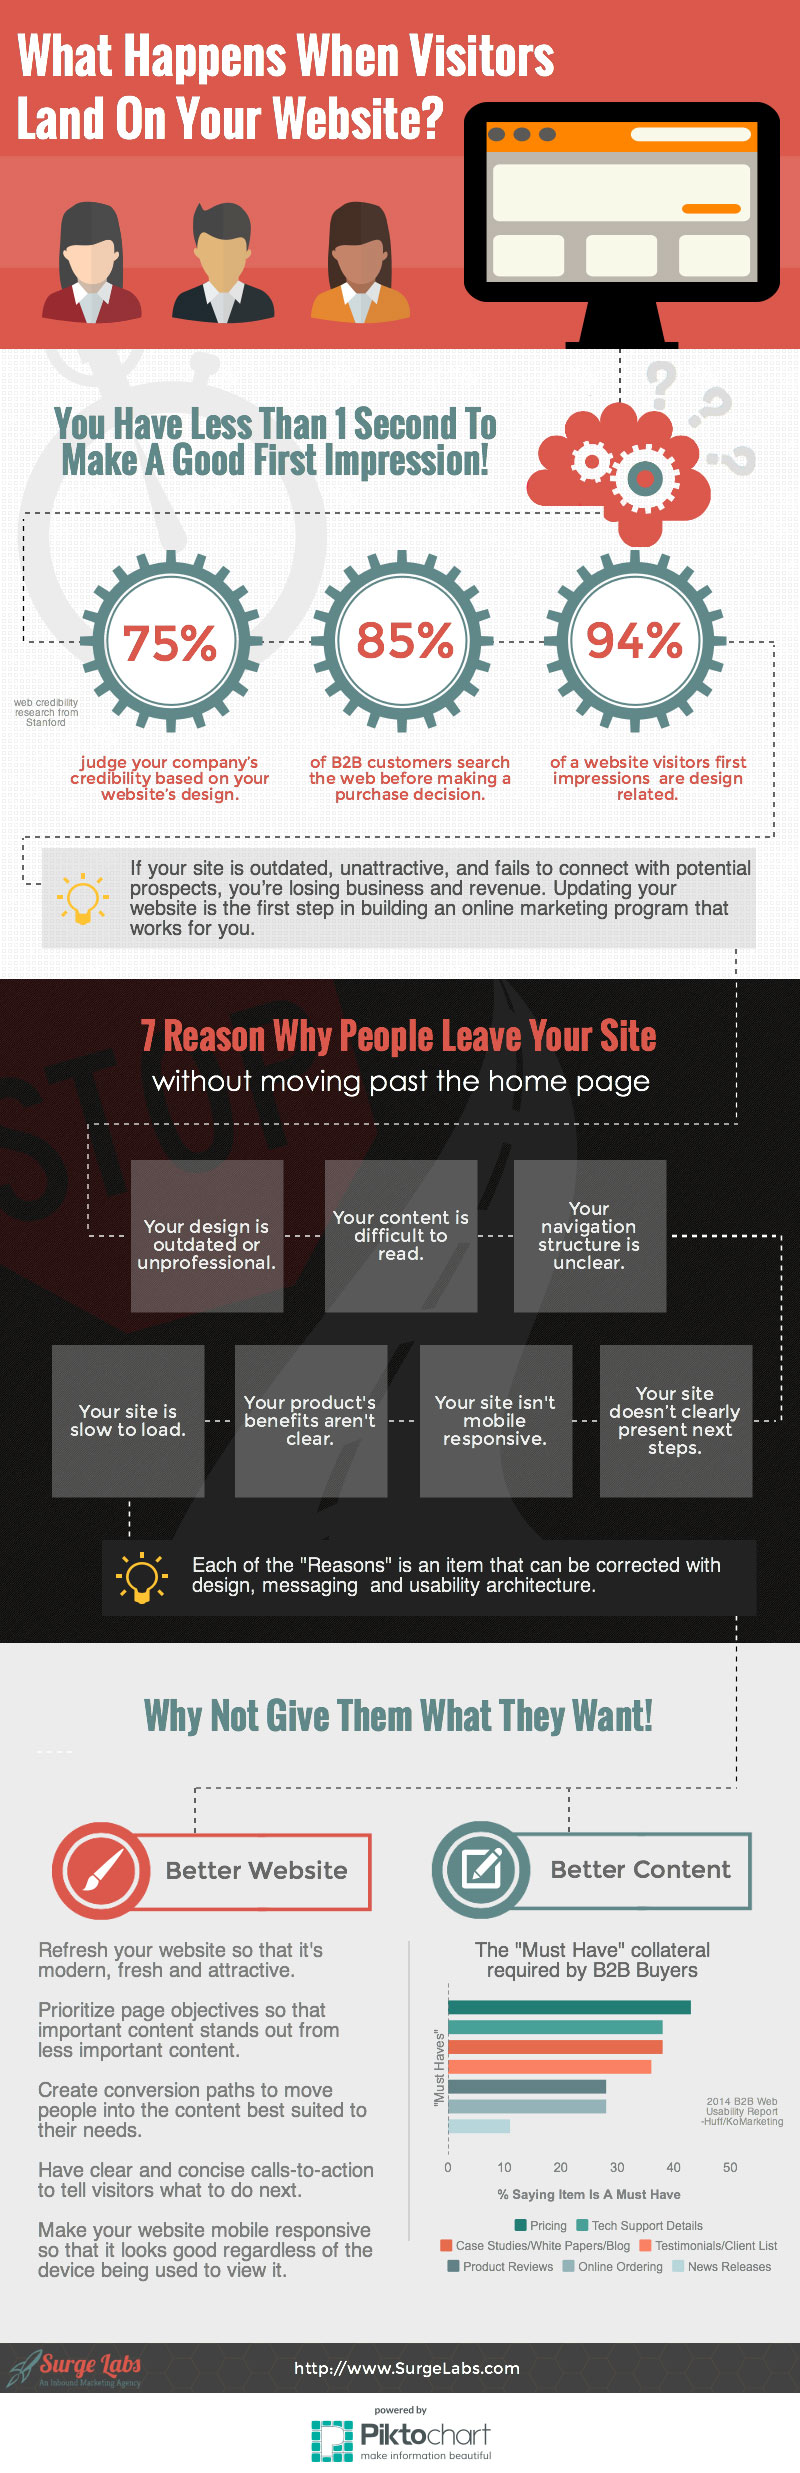 What Happens When-Visitors Land On Your Website